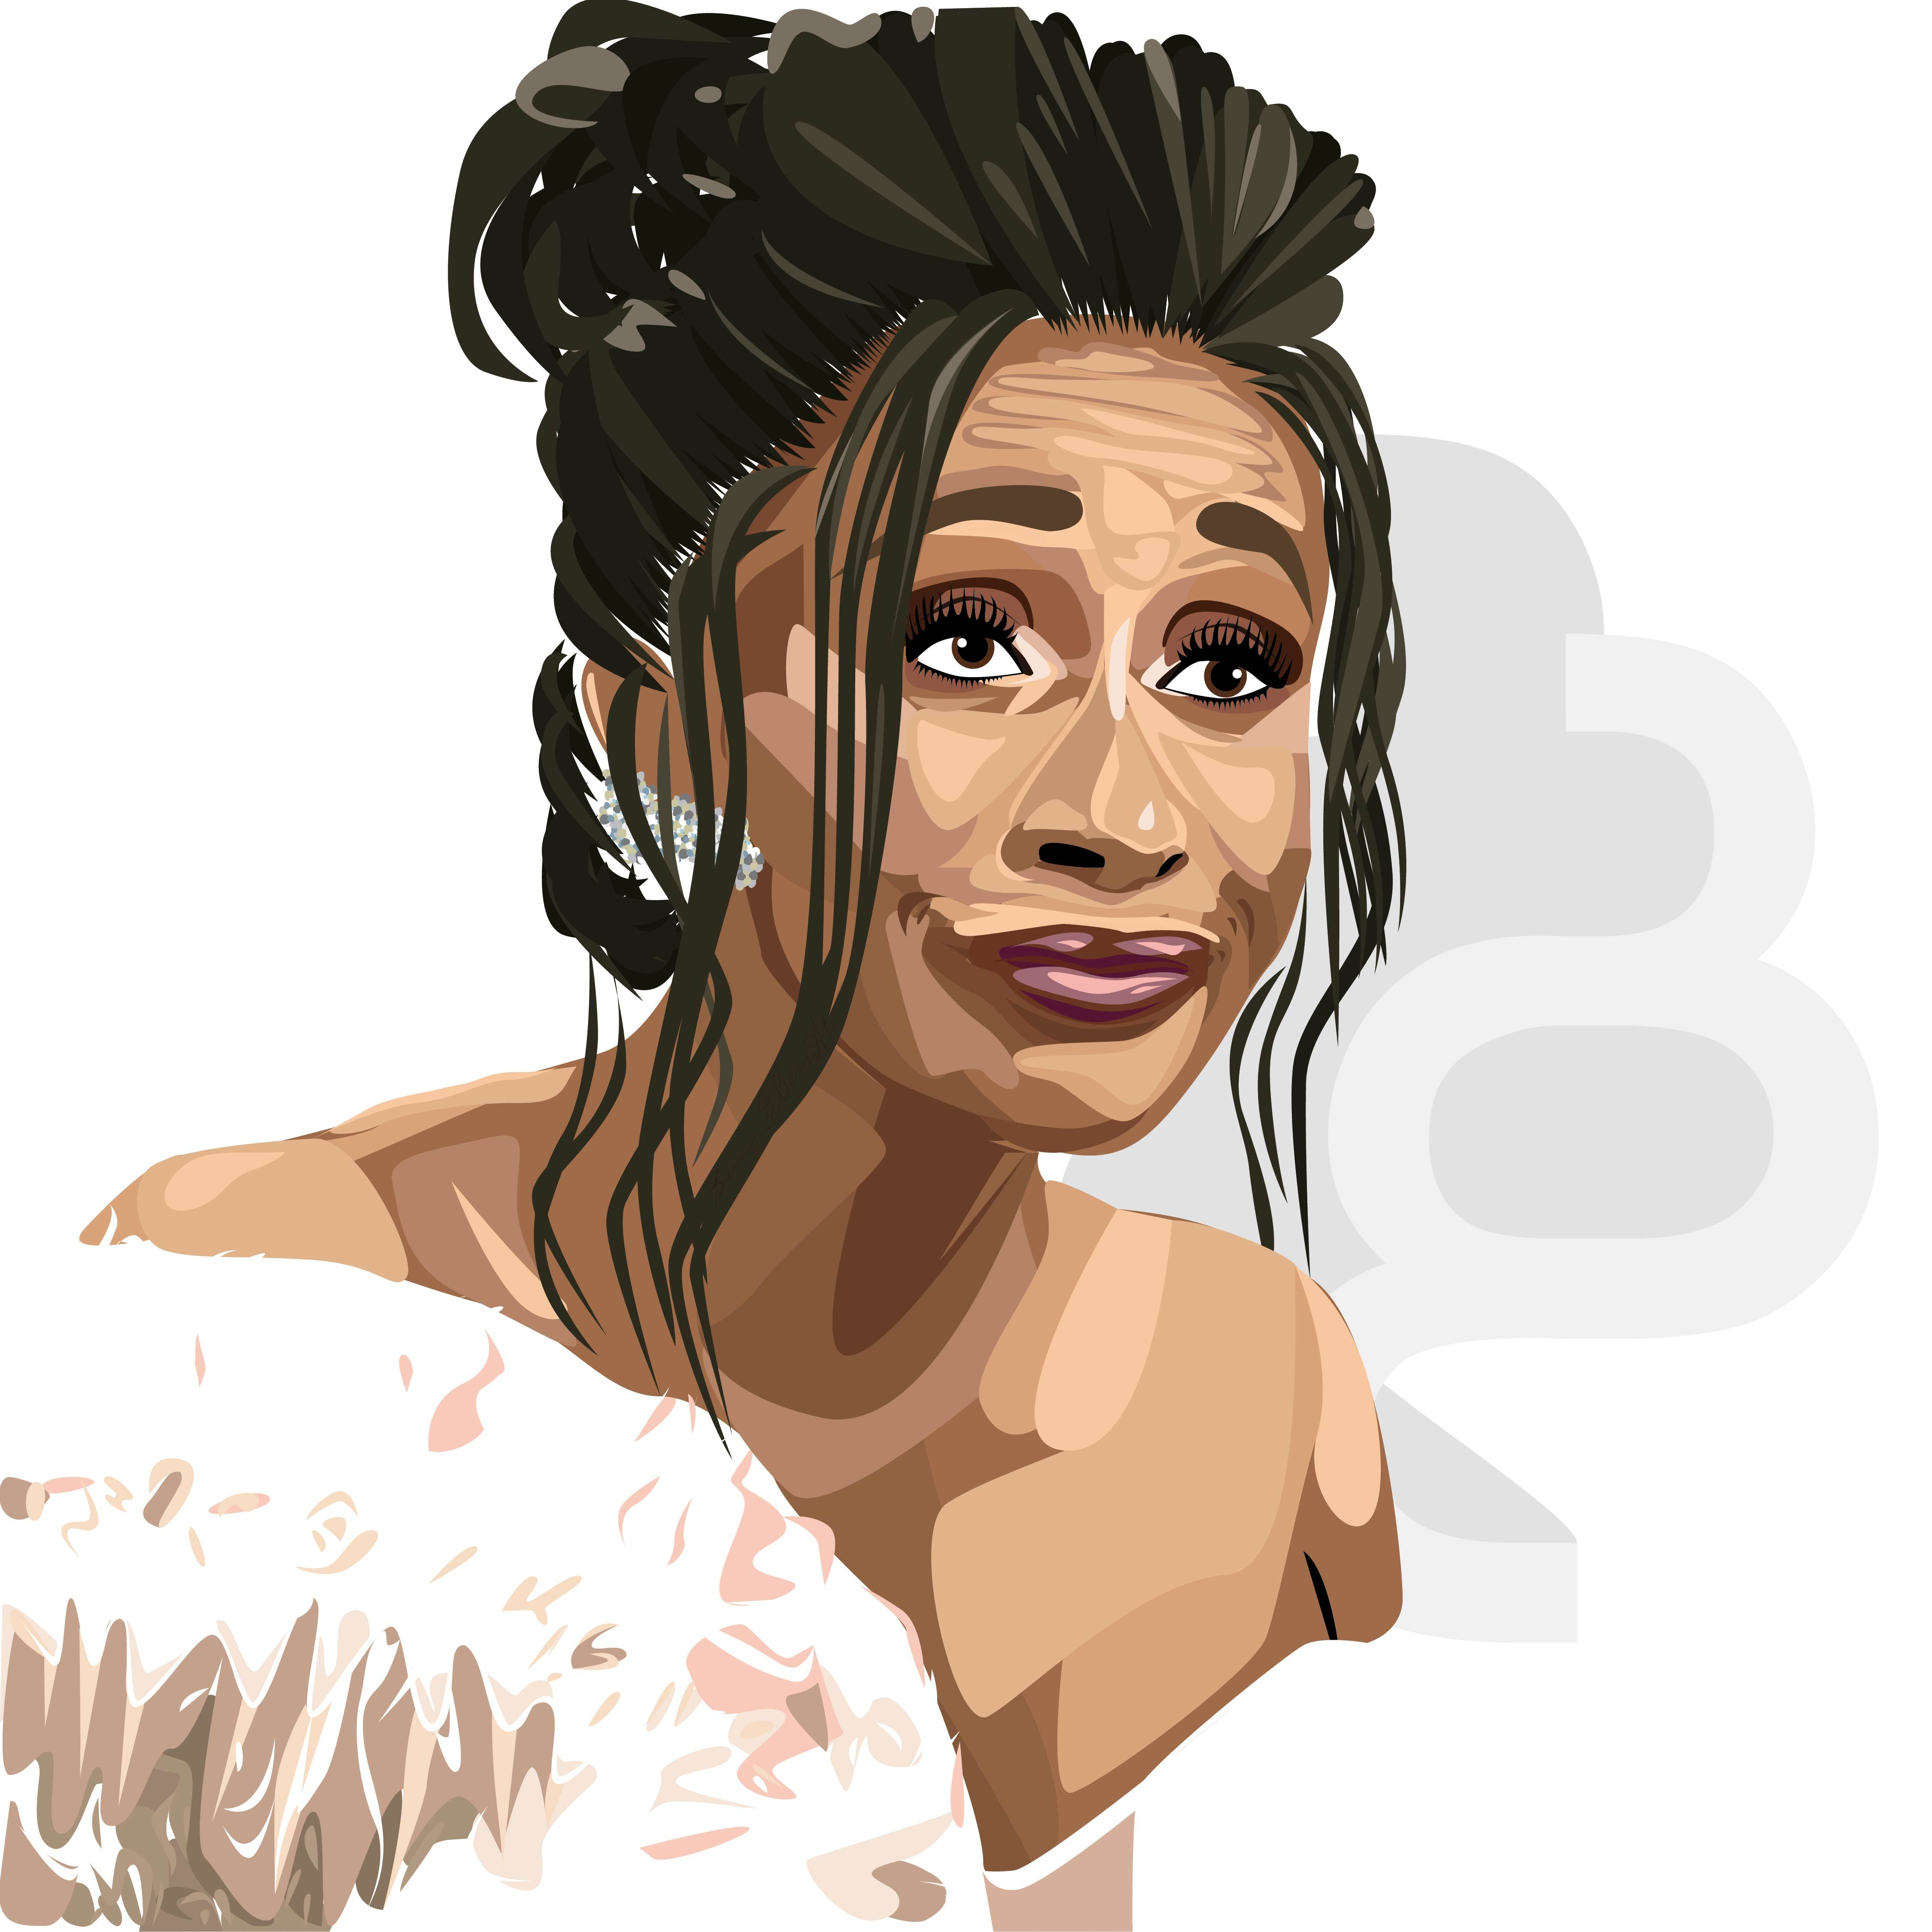 Artwork Cardi B Cartoon Wallpaper